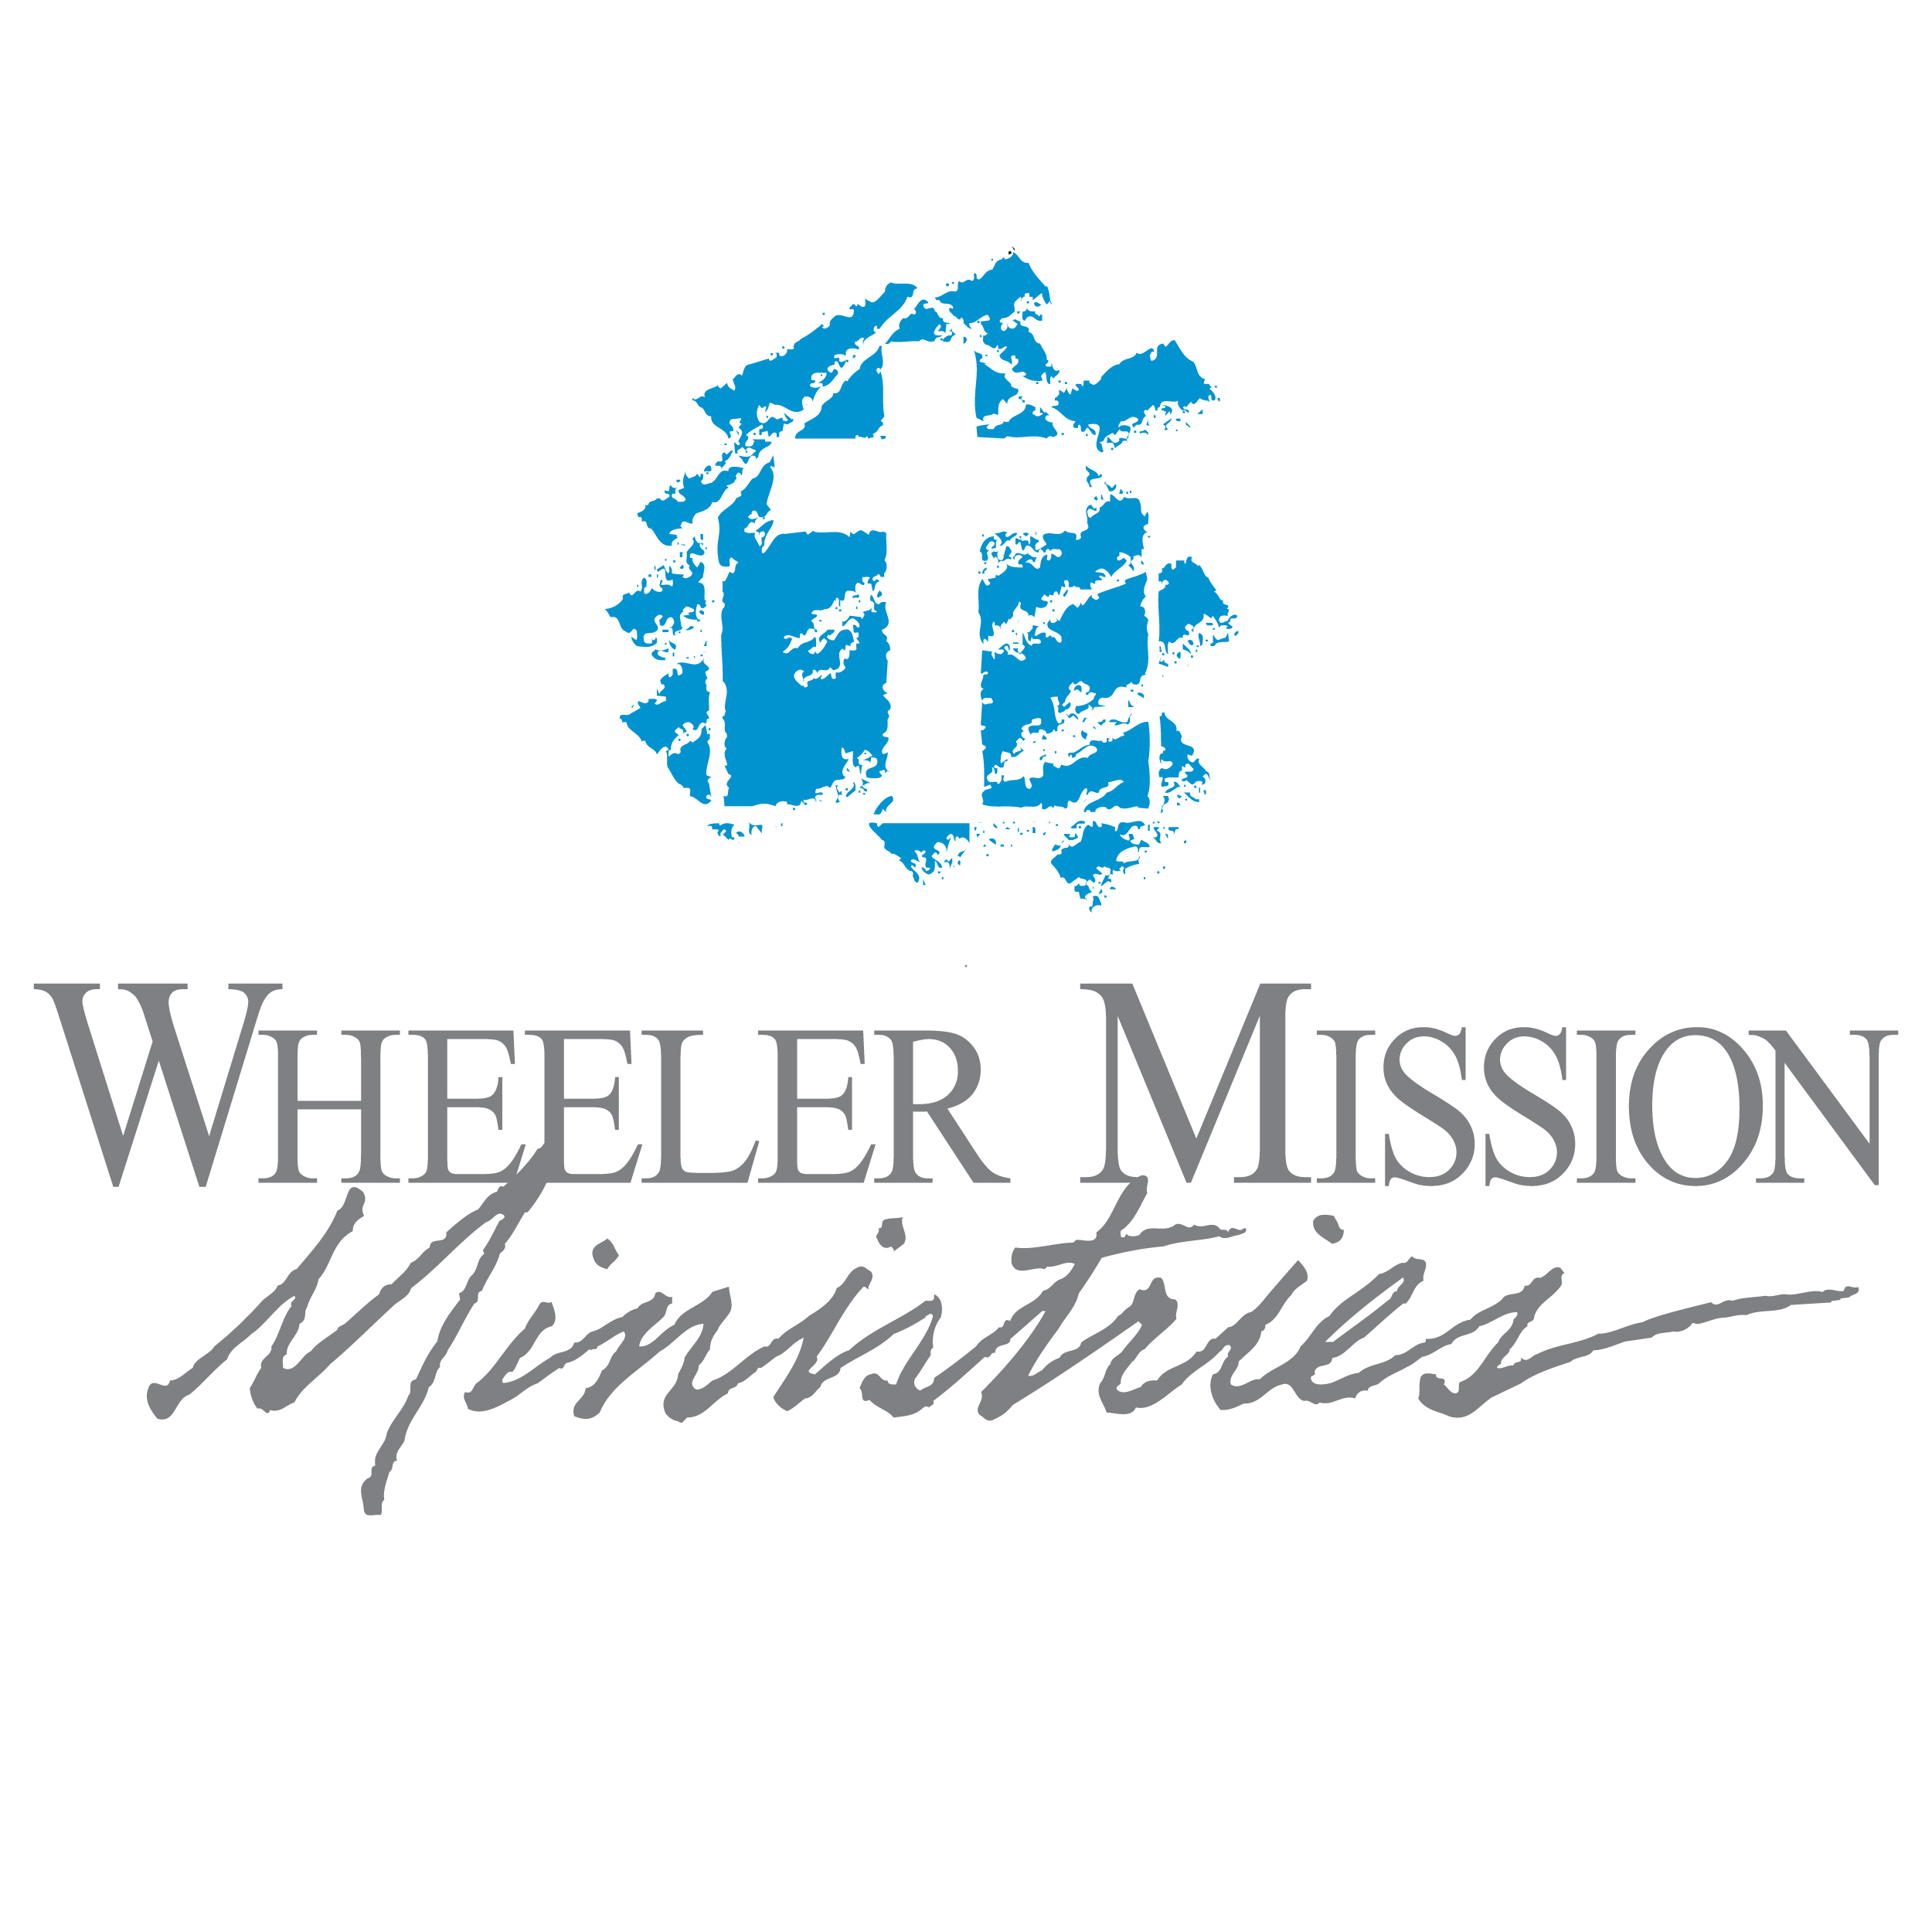 Wheeler Mission is an organization located in downtown Indy dedicated to helping feed the hungry, clothe the needy, and share the love of Christ. While there are options to help serve in our general area, this organization is doing wonderful things in the heart of downtown. Whether you offer to serve a meal with your group, or sign up to help with a special event, you'll be helping further the kingdom of God! || Phone Number - 317-635-3575